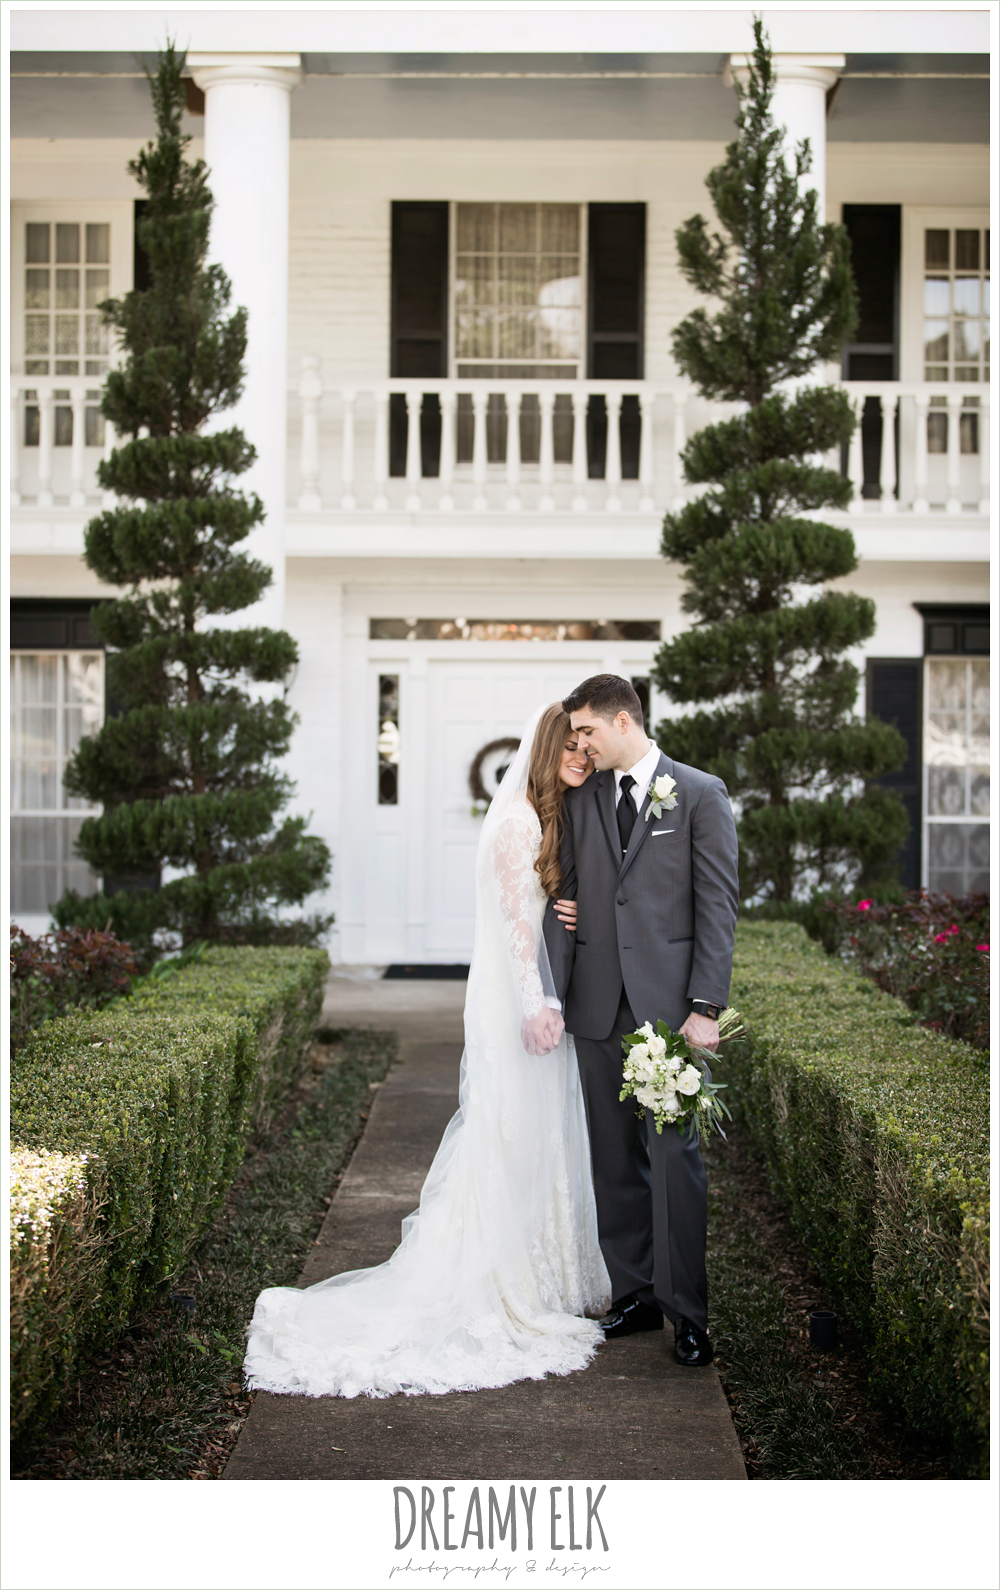 bride and groom, long sleeve lace wedding dress, long lace veil, white wedding bouquet, dark gray suit and black tie, morning winter january wedding, ashelynn manor {dreamy elk photography and design}